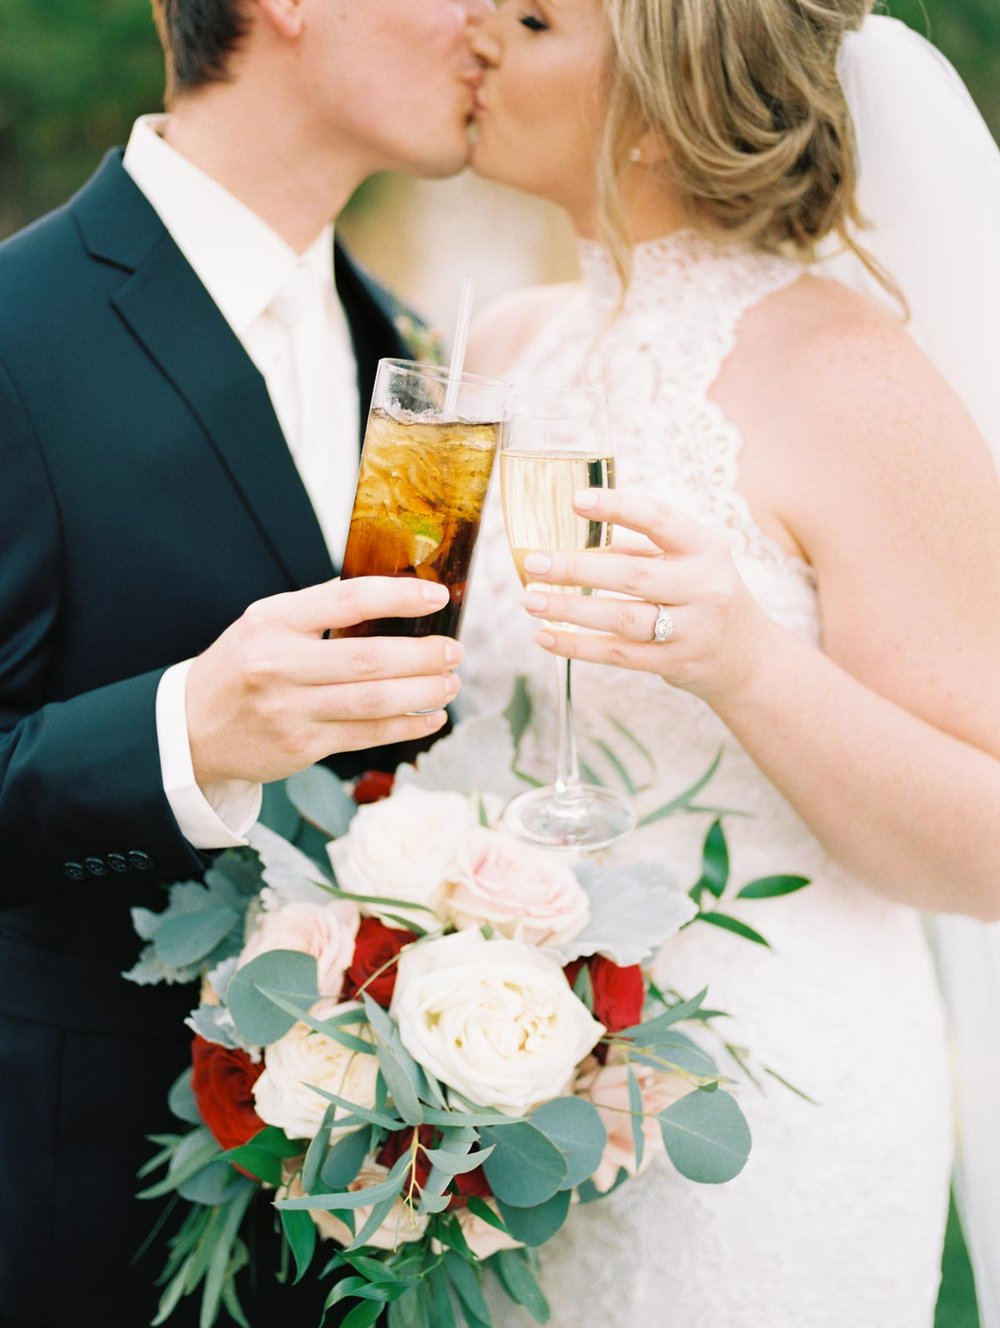 cheers-bride-groom-florals.jpg